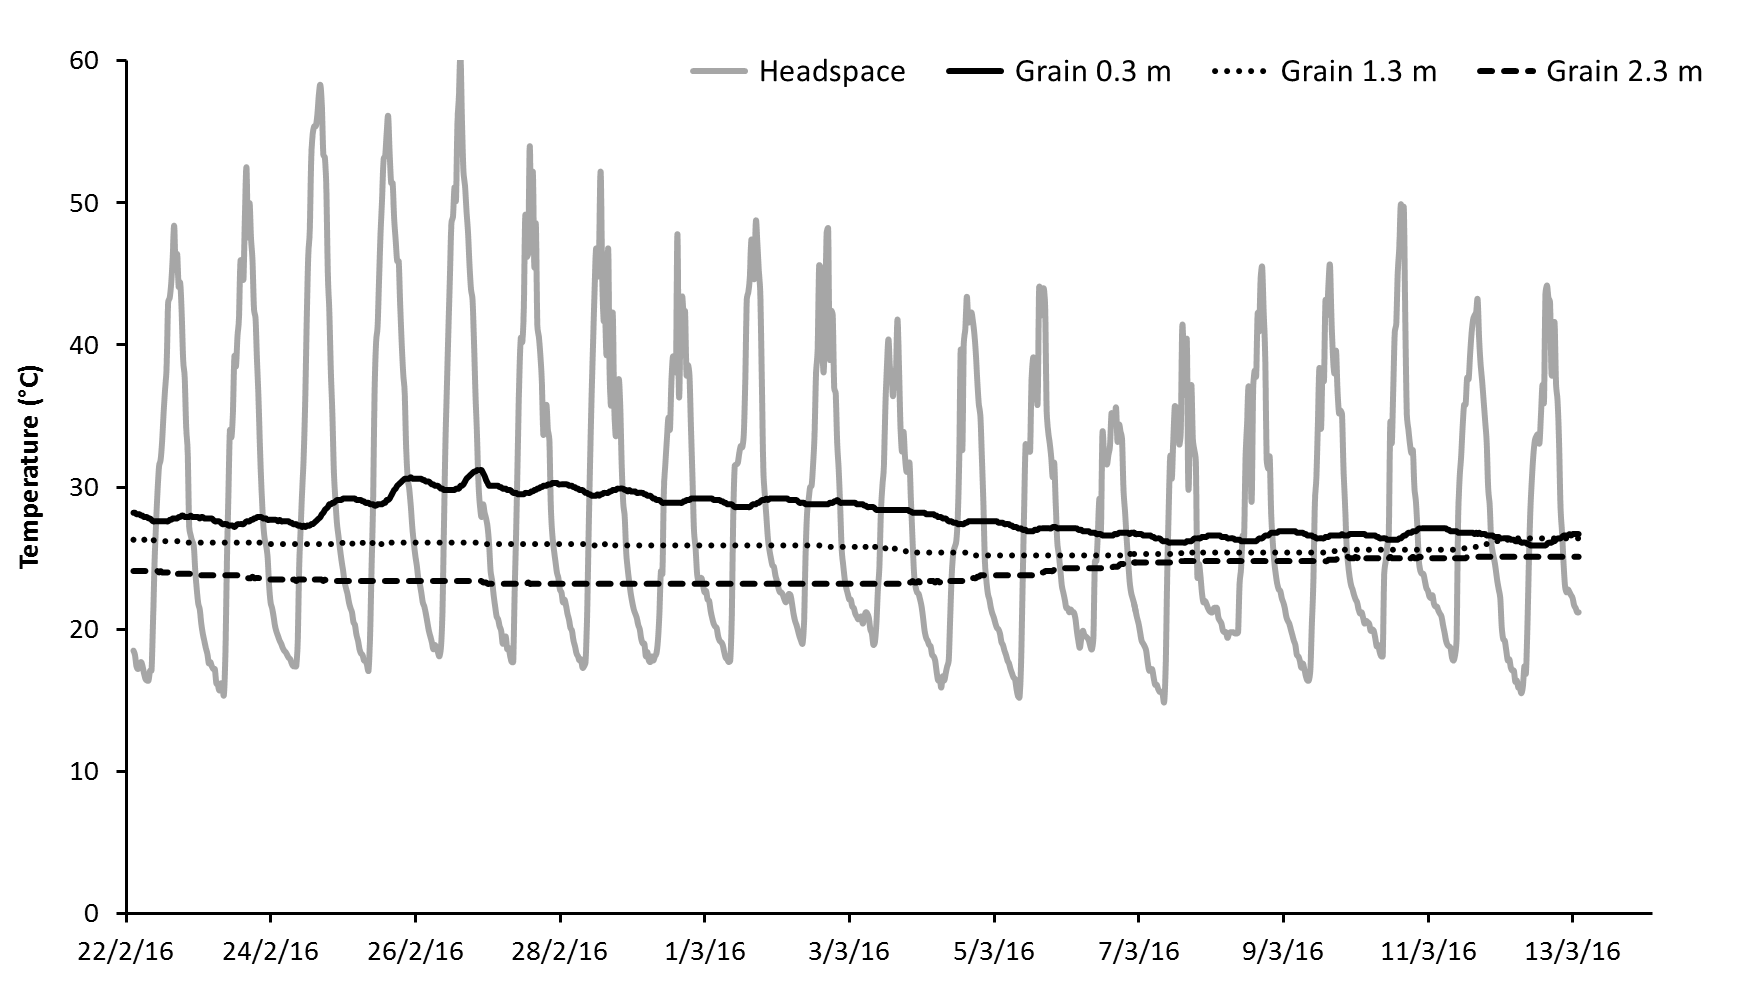 Figure 4.   Temperatures in a silo of barley in headspace and at three grain depths. The warmer than expected grain temperatures indicated possible aeration problem. See Farm Case study 1.